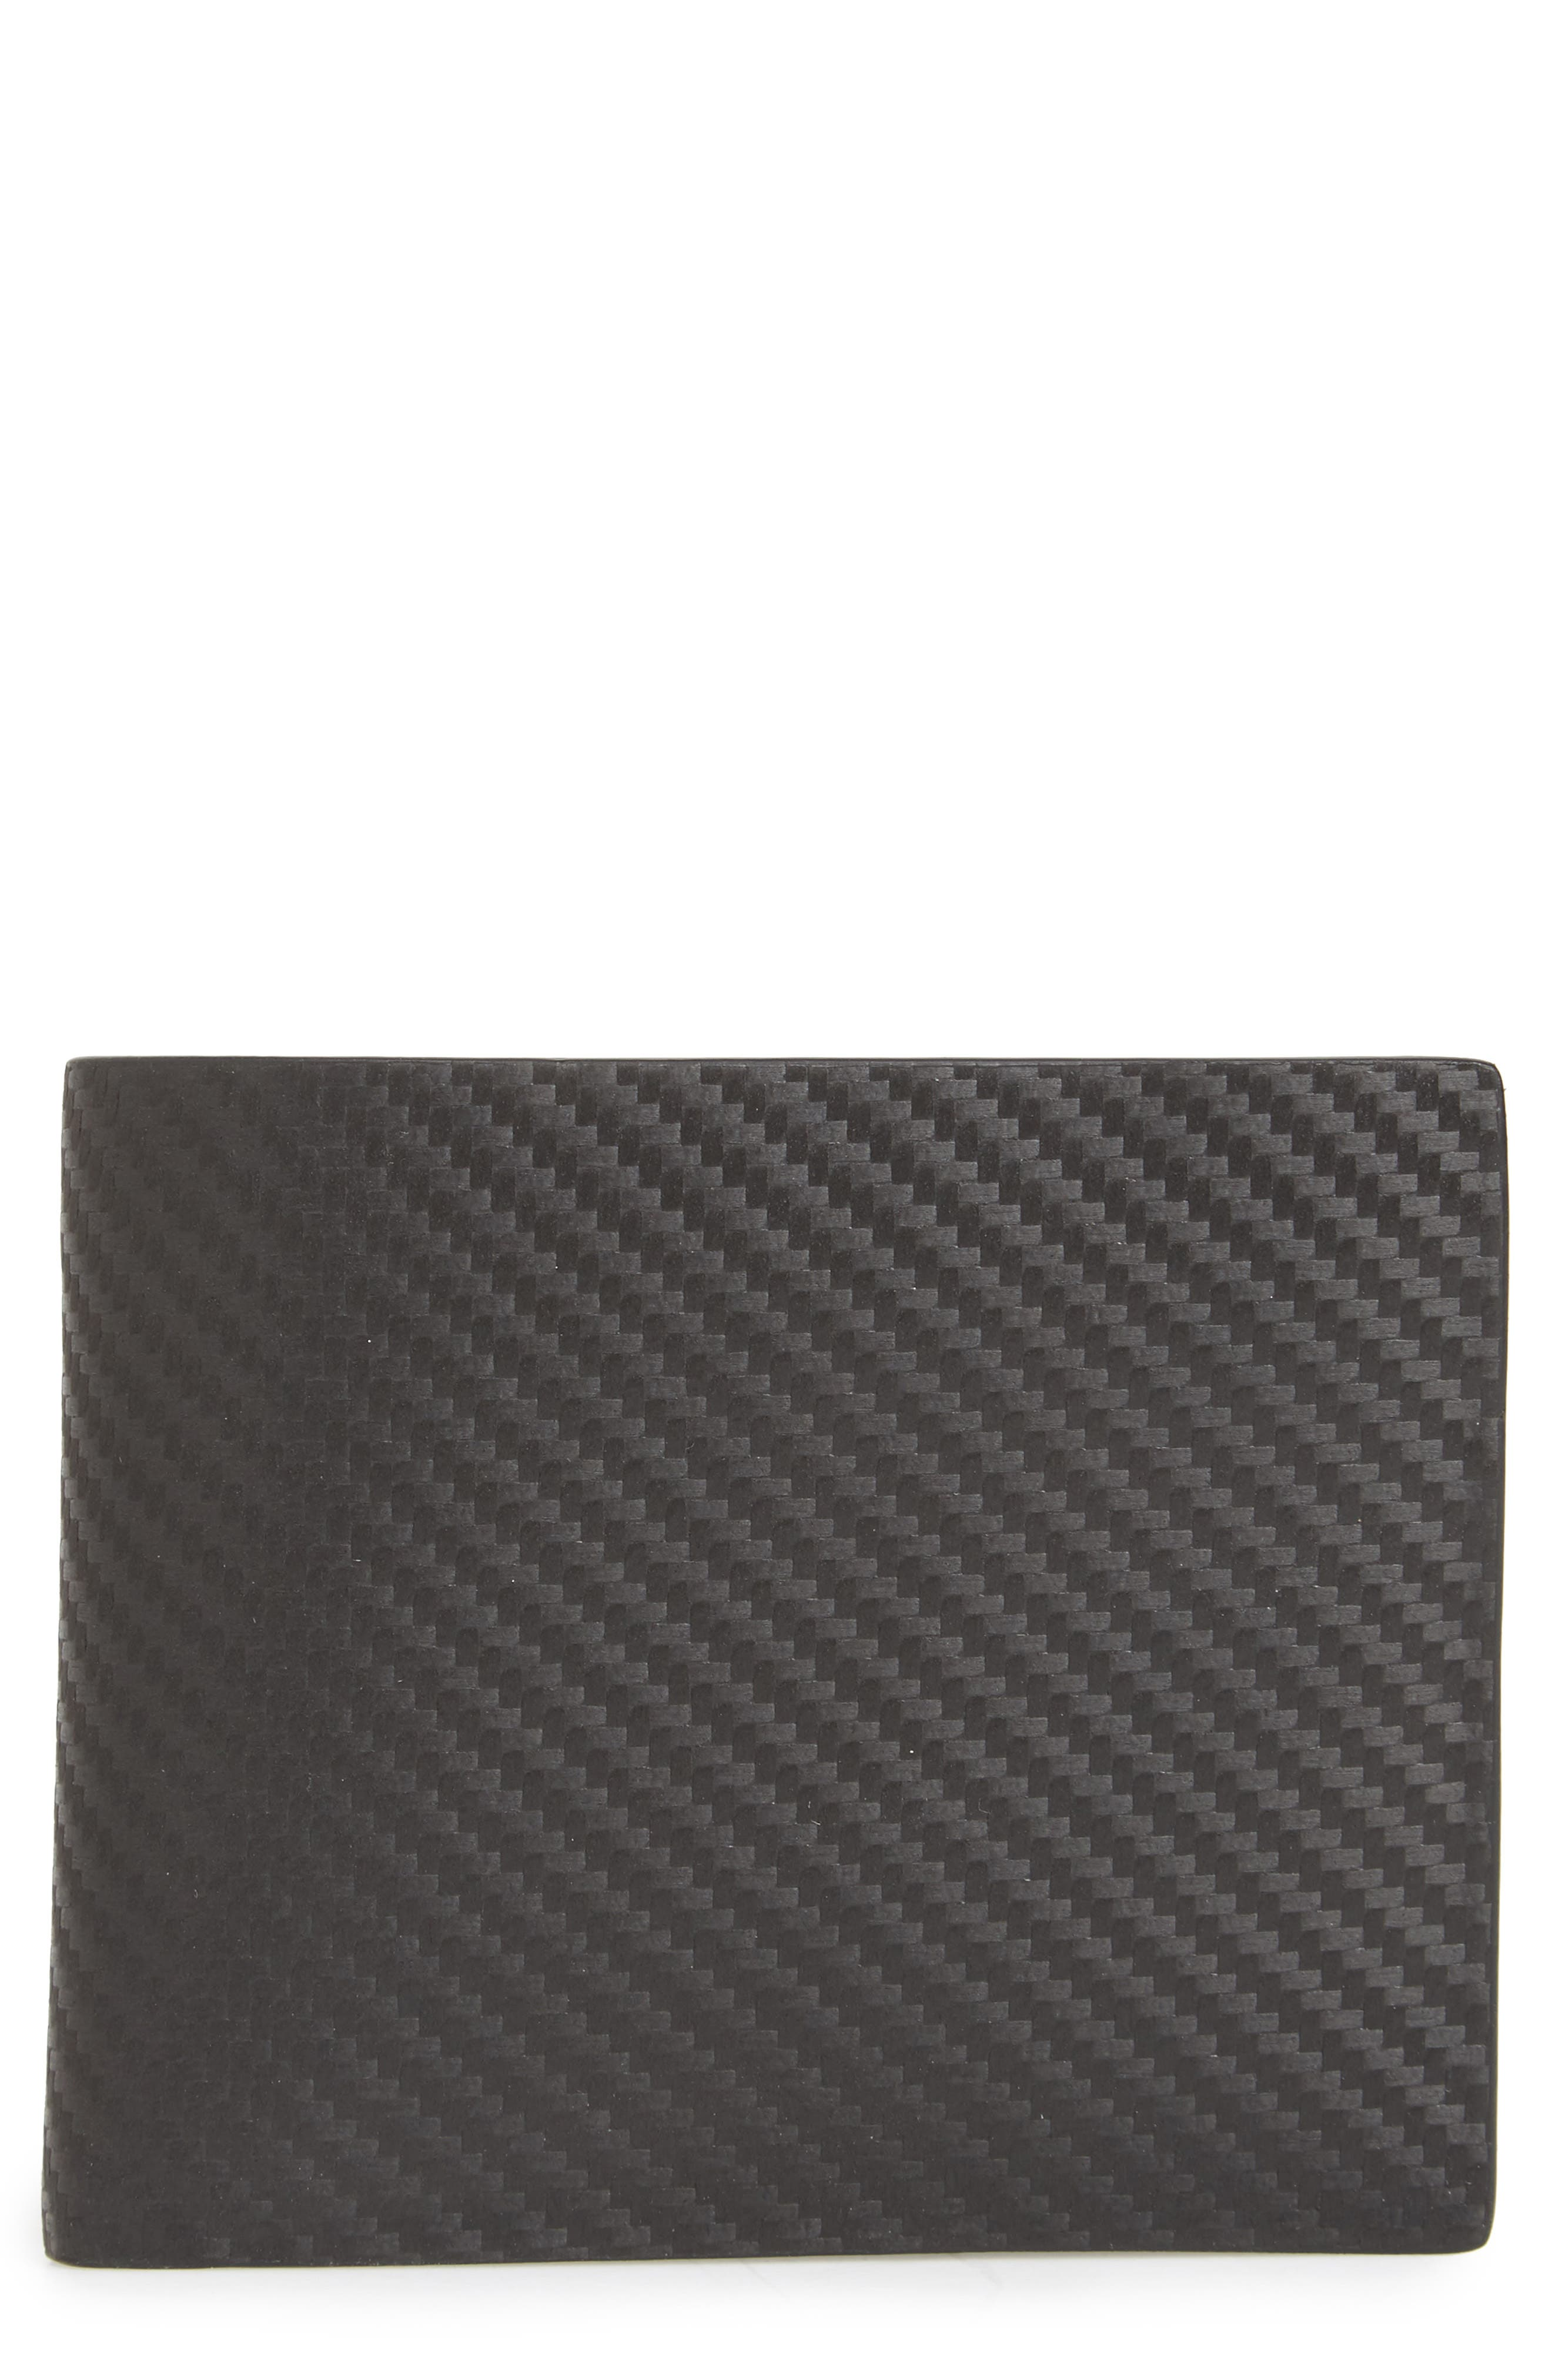 Chassis Leather Wallet,                         Main,                         color, Black